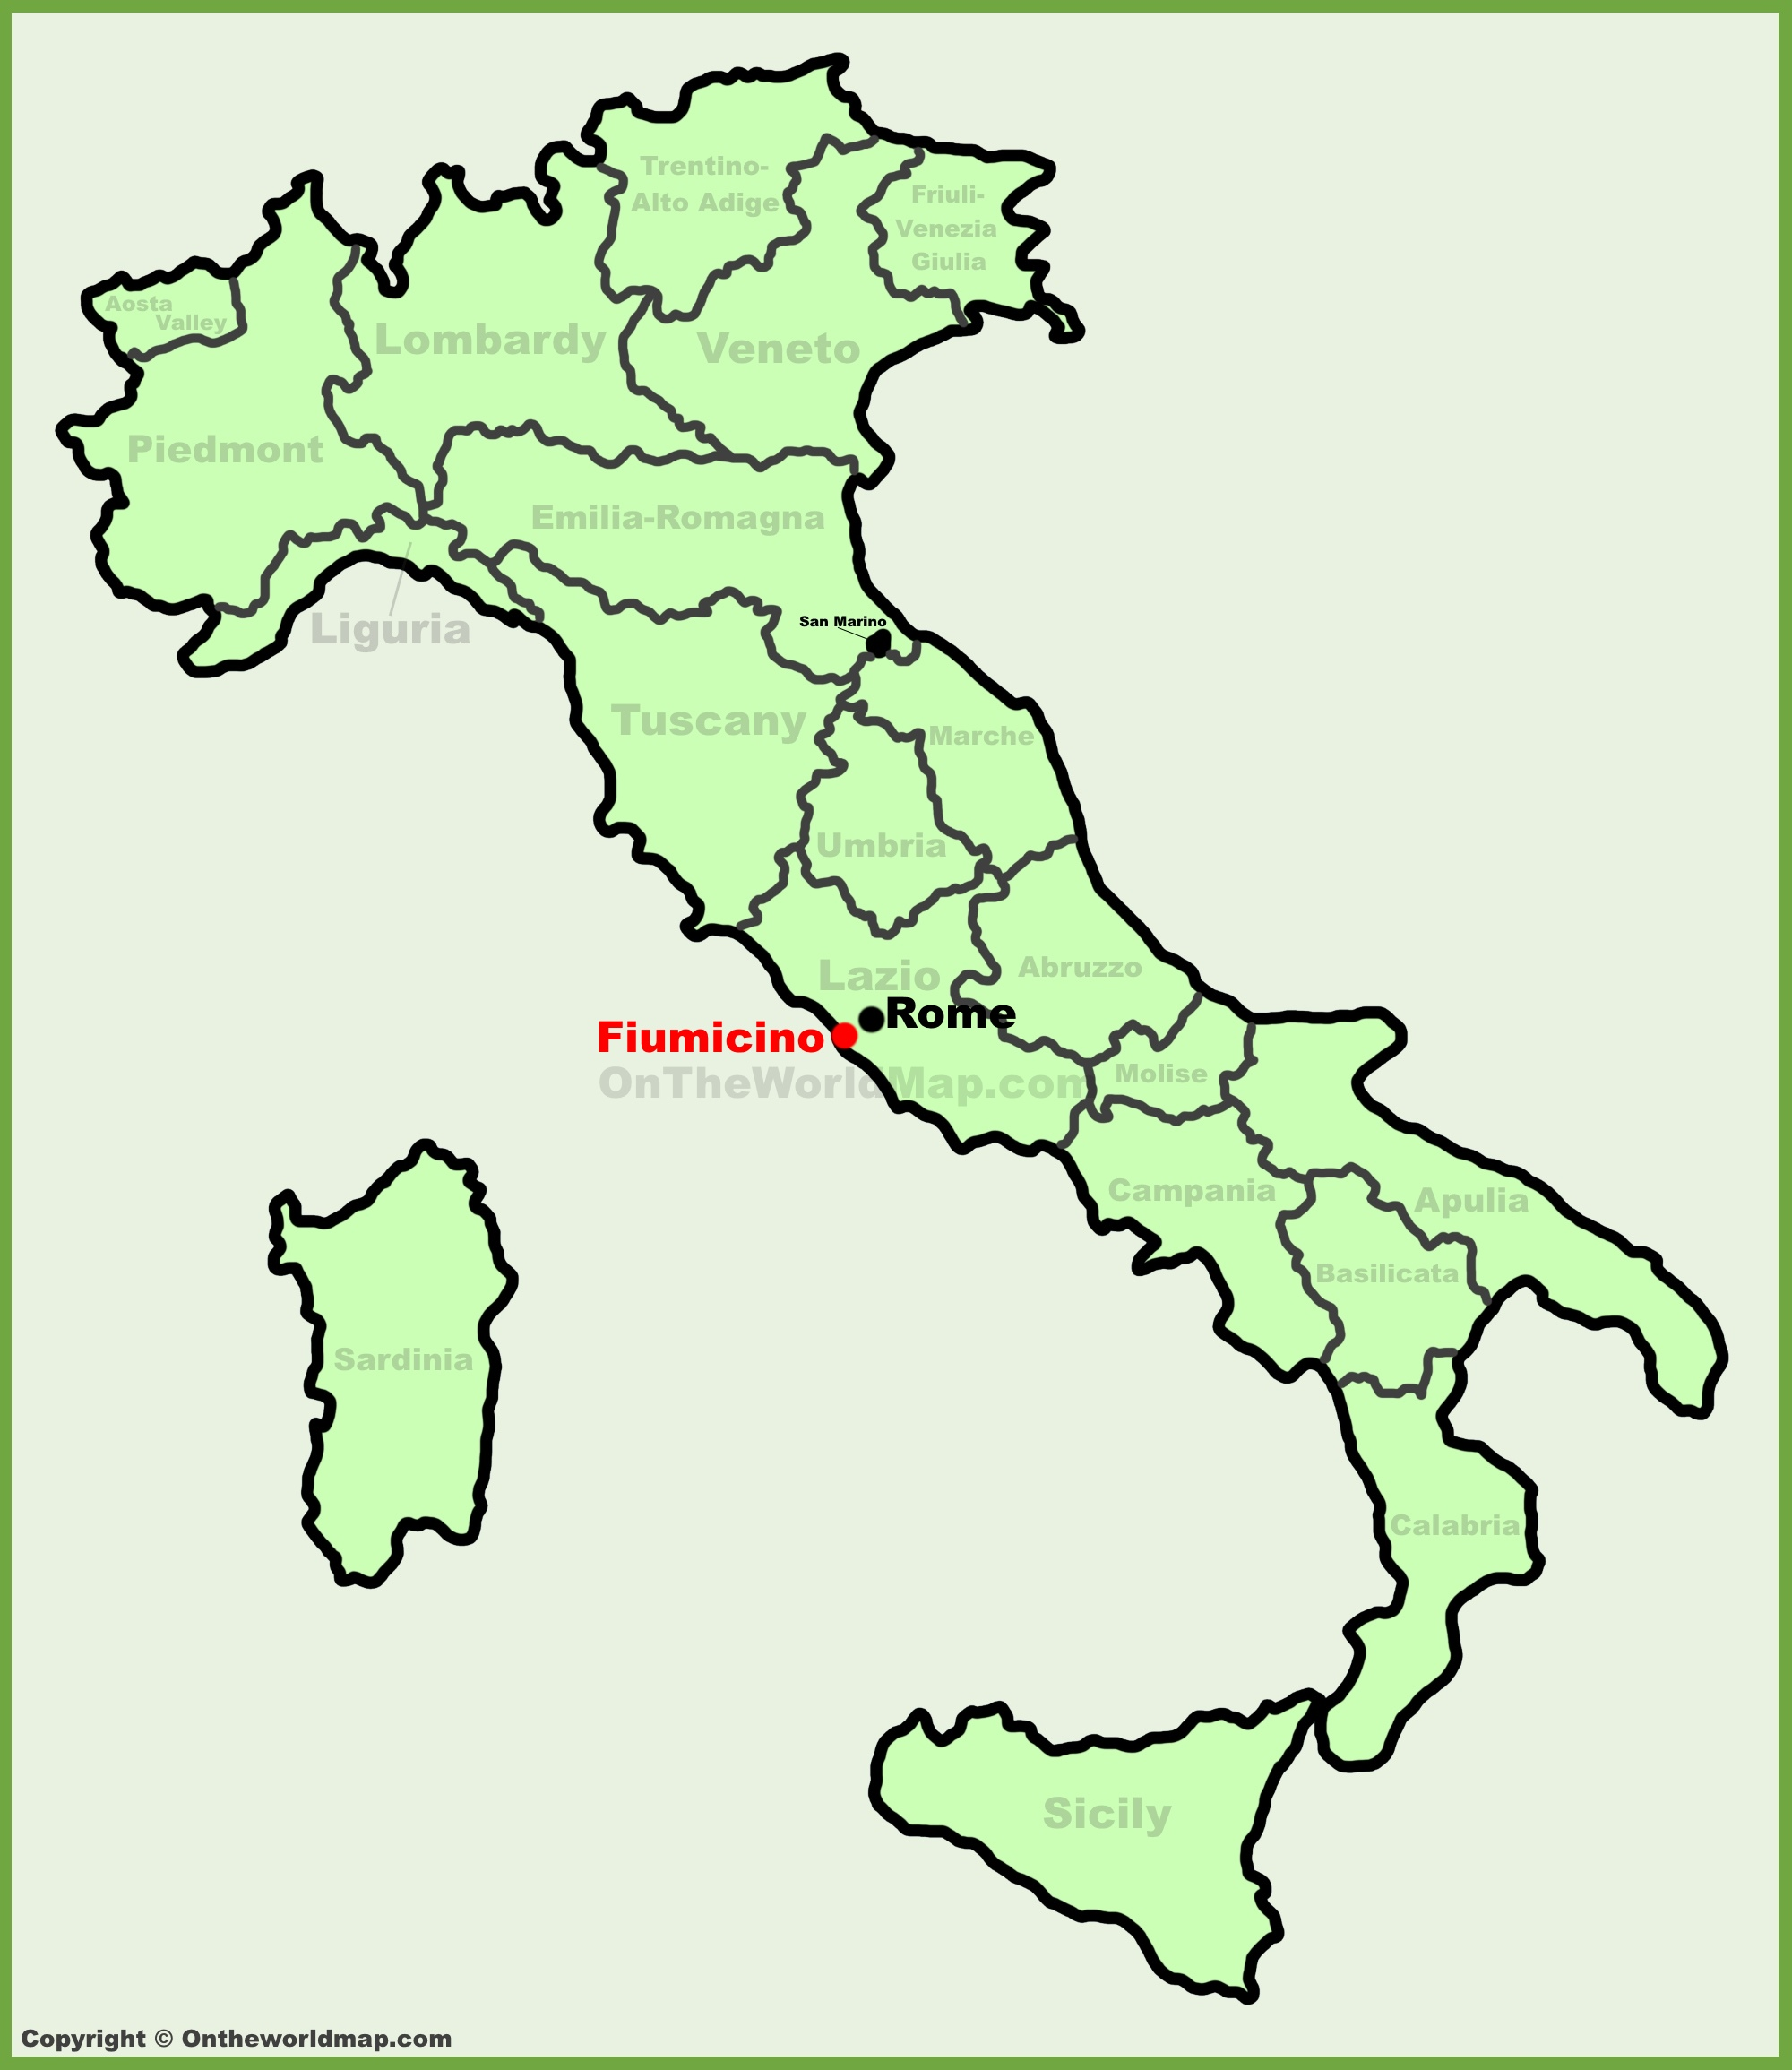 Fiumicino location on the Italy map